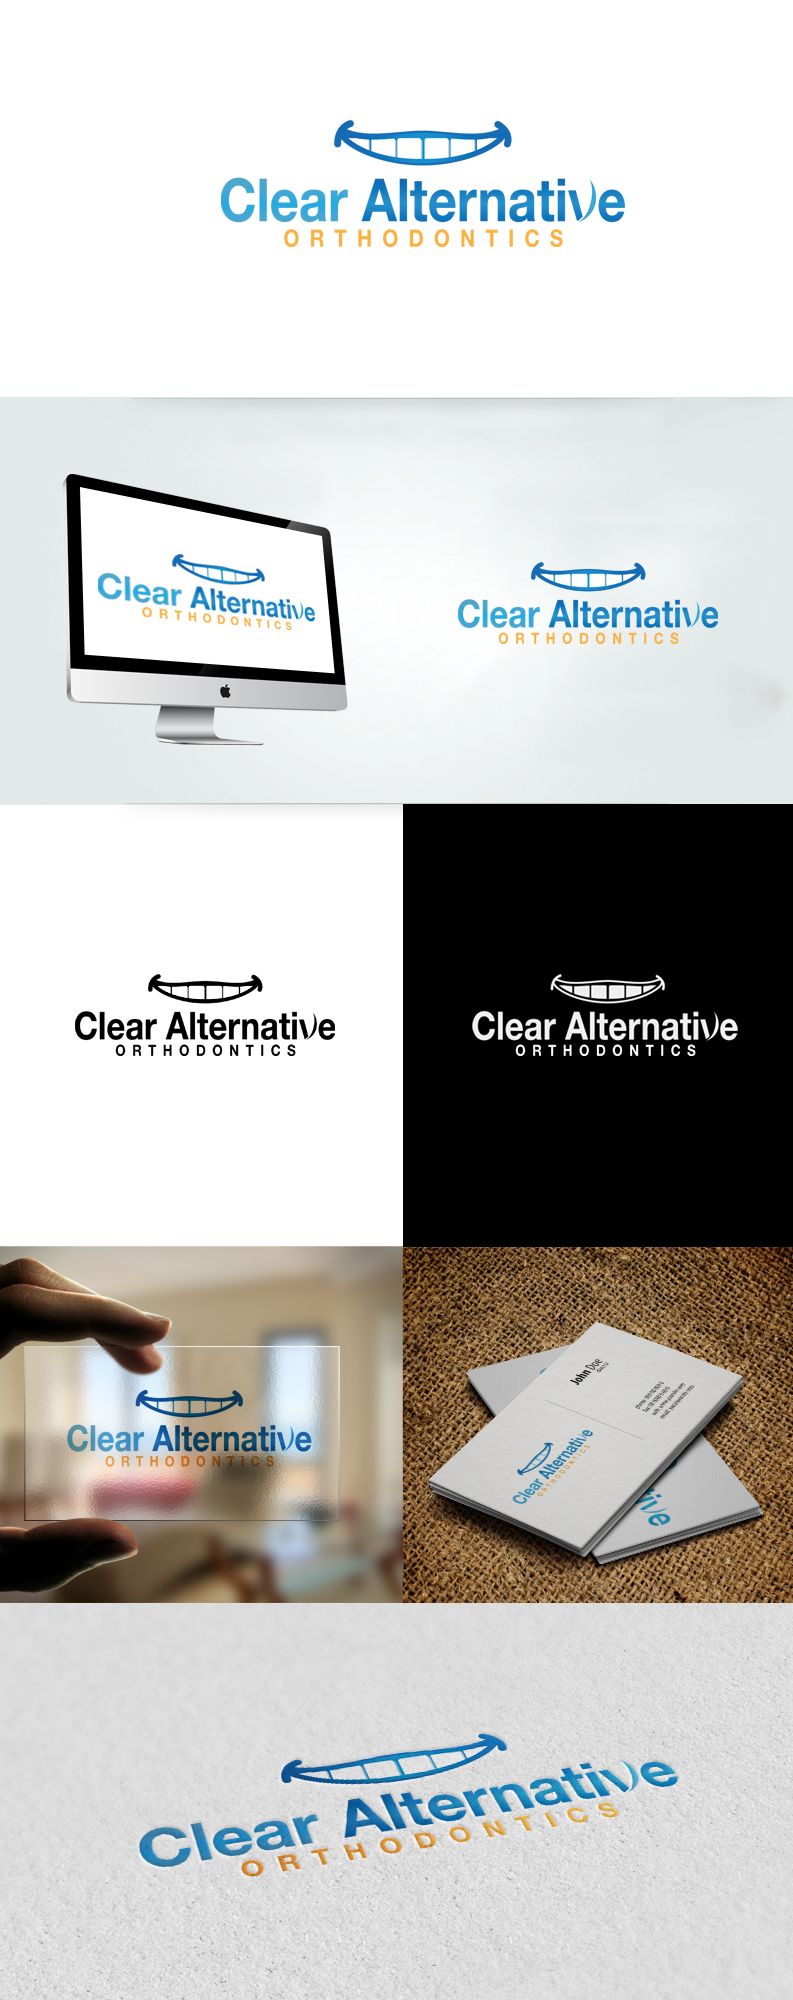 New logo wanted for Clear Alternative Orthodontics